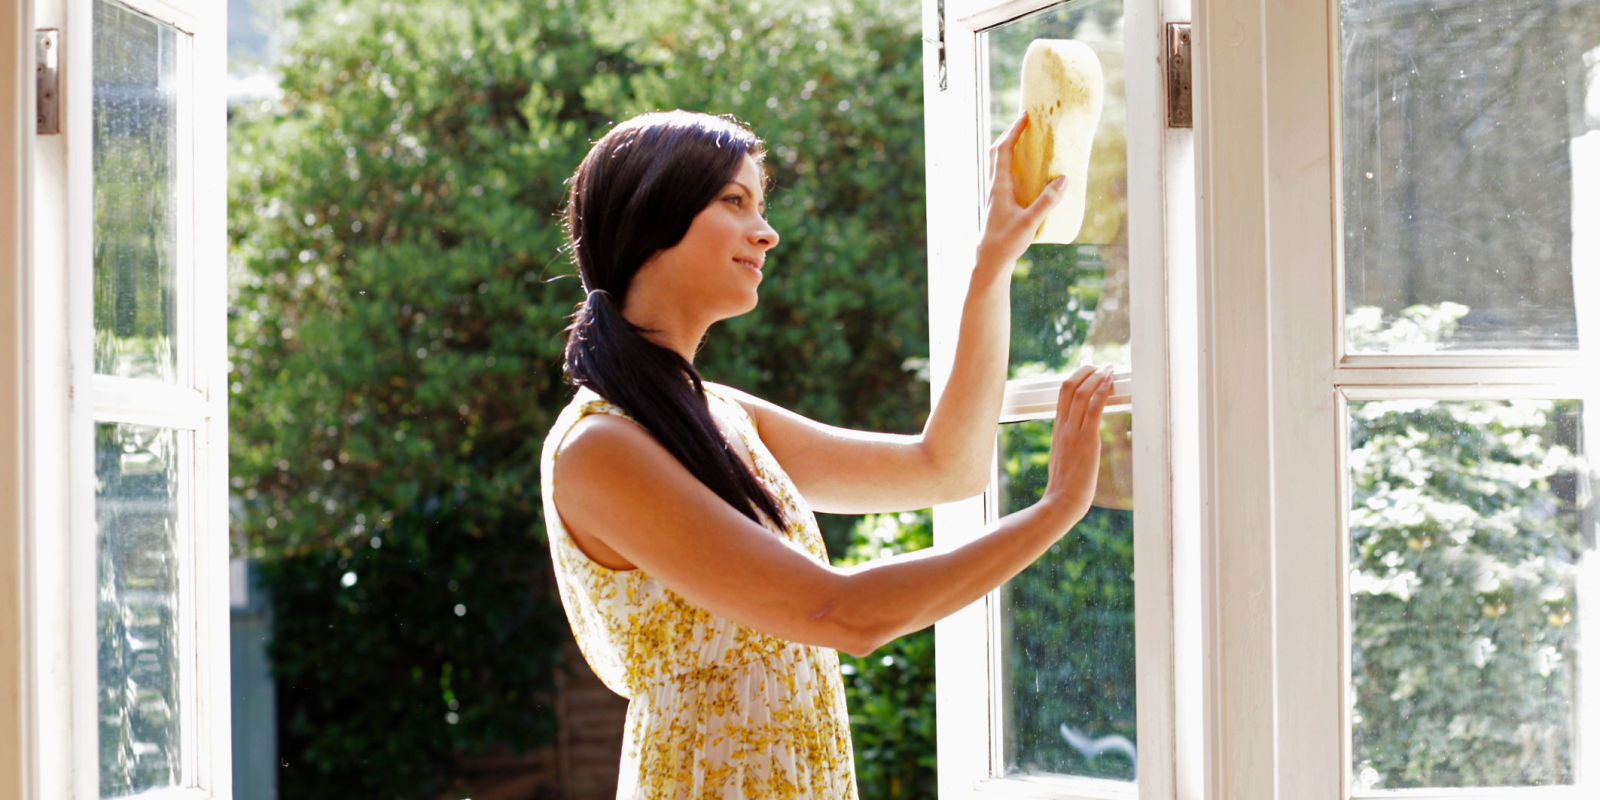 Landscape 1435163179 window cleaning sunny